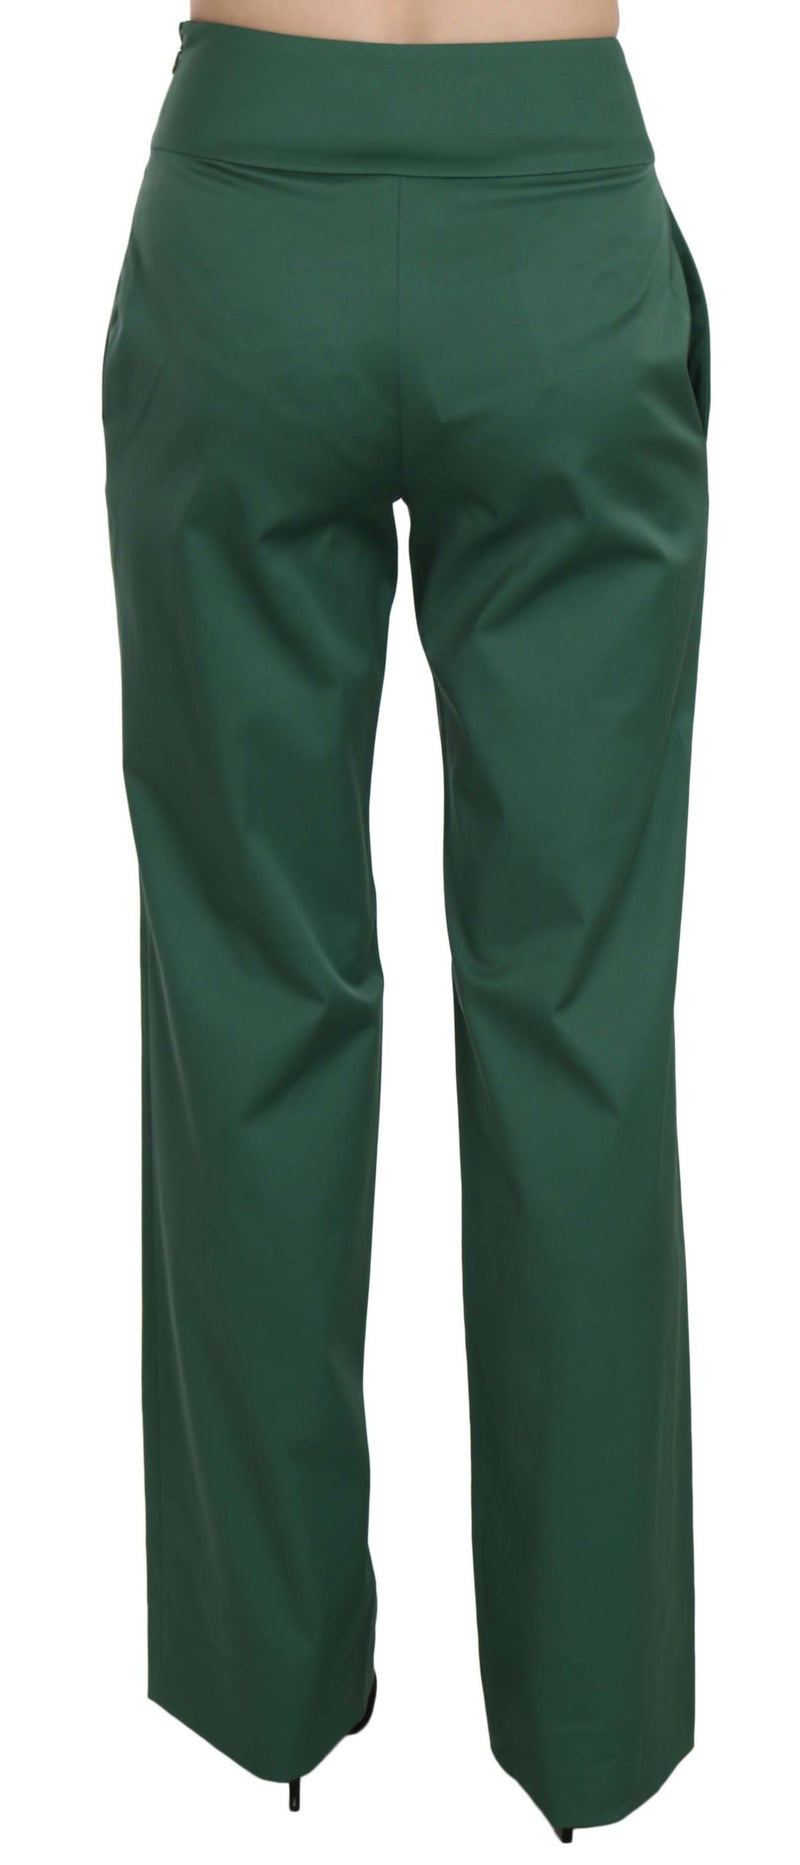 Green High Waist Straight Formal Trousers Pants